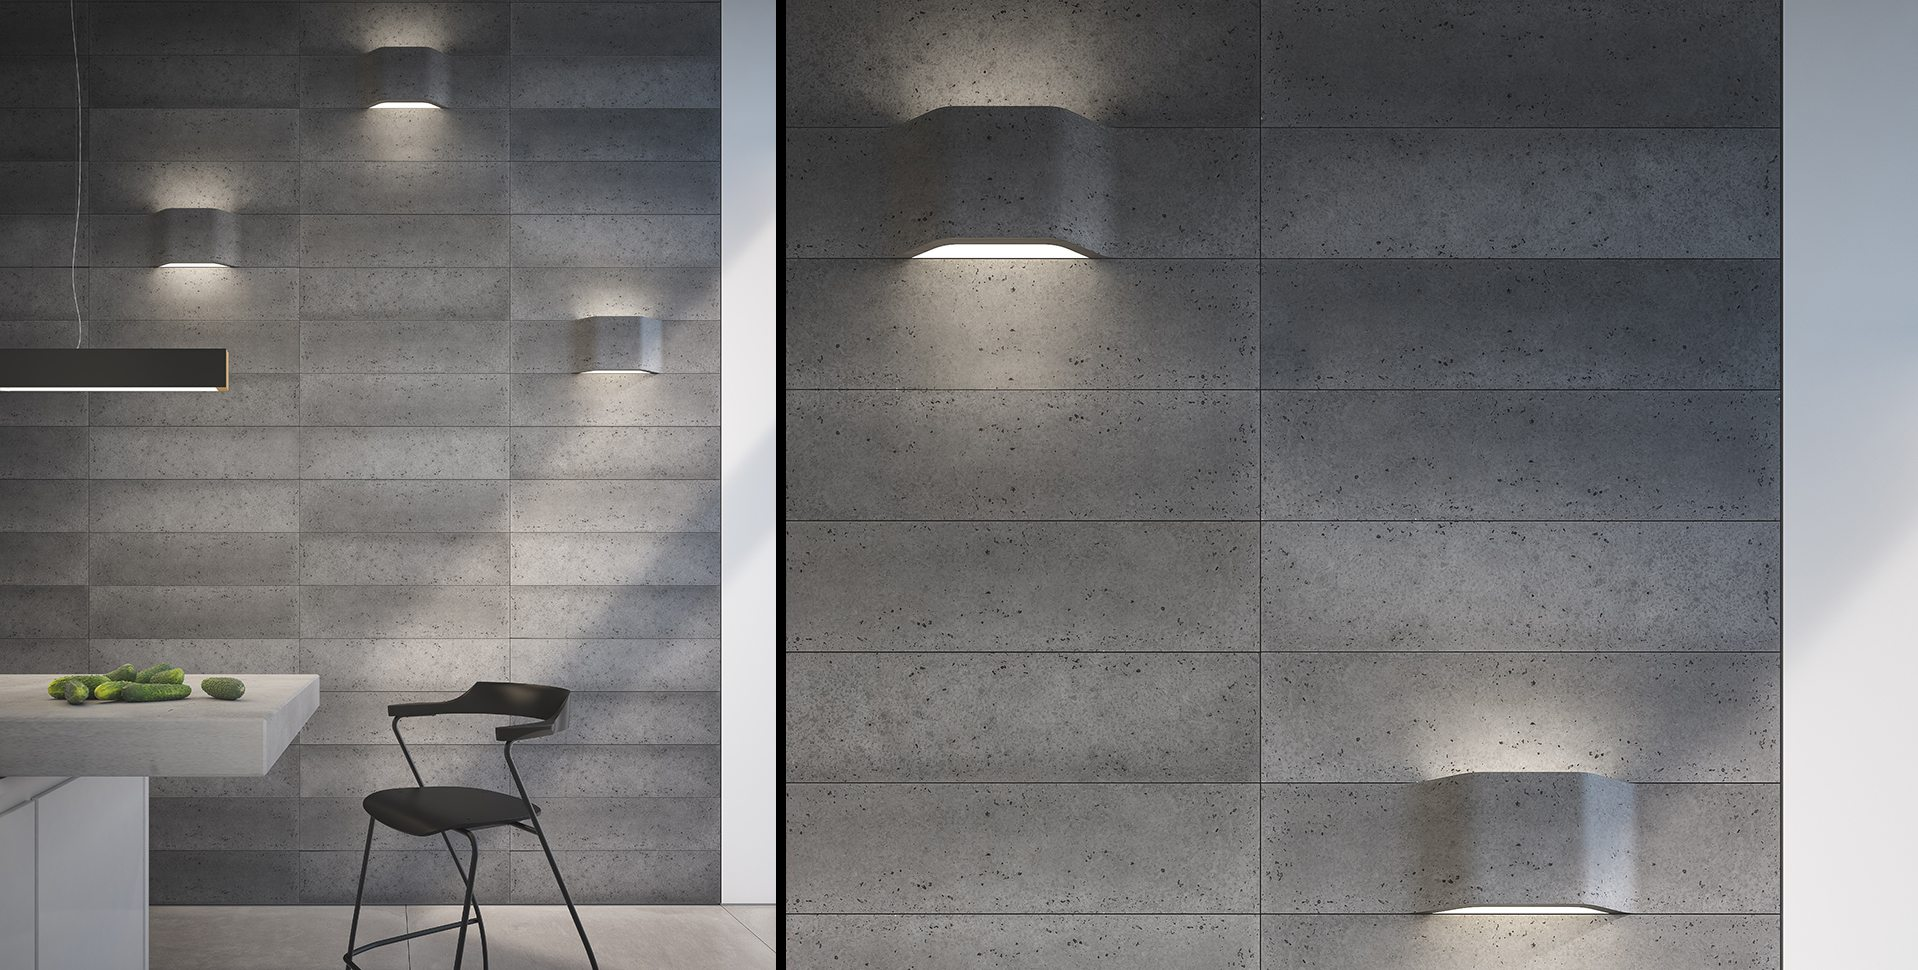 Product Visualization: Wall Covering and Lighting Fixtures, Kitchen Interior